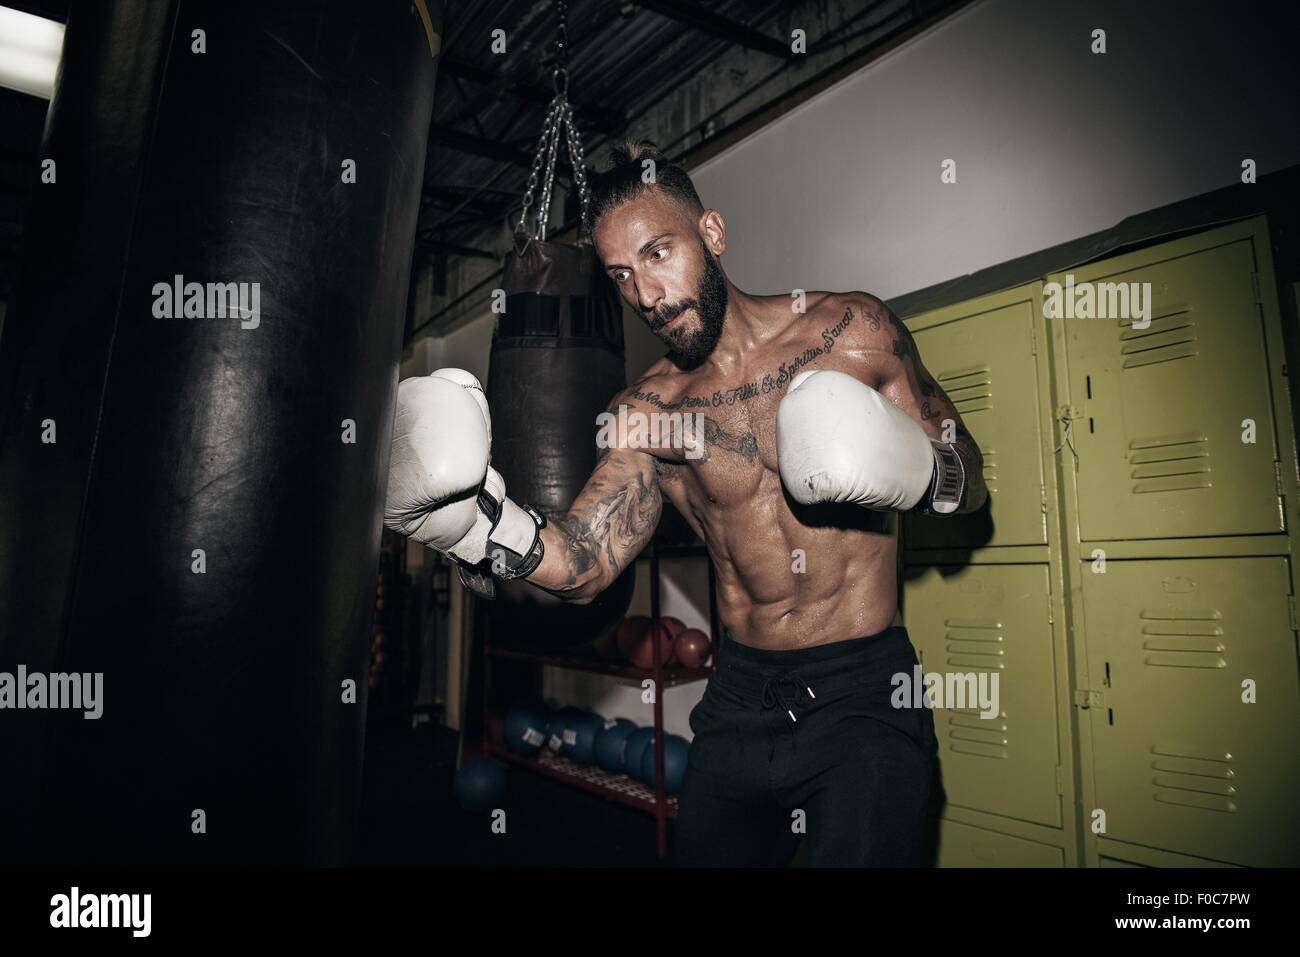 Male boxer training on gym punch bag - Stock Image